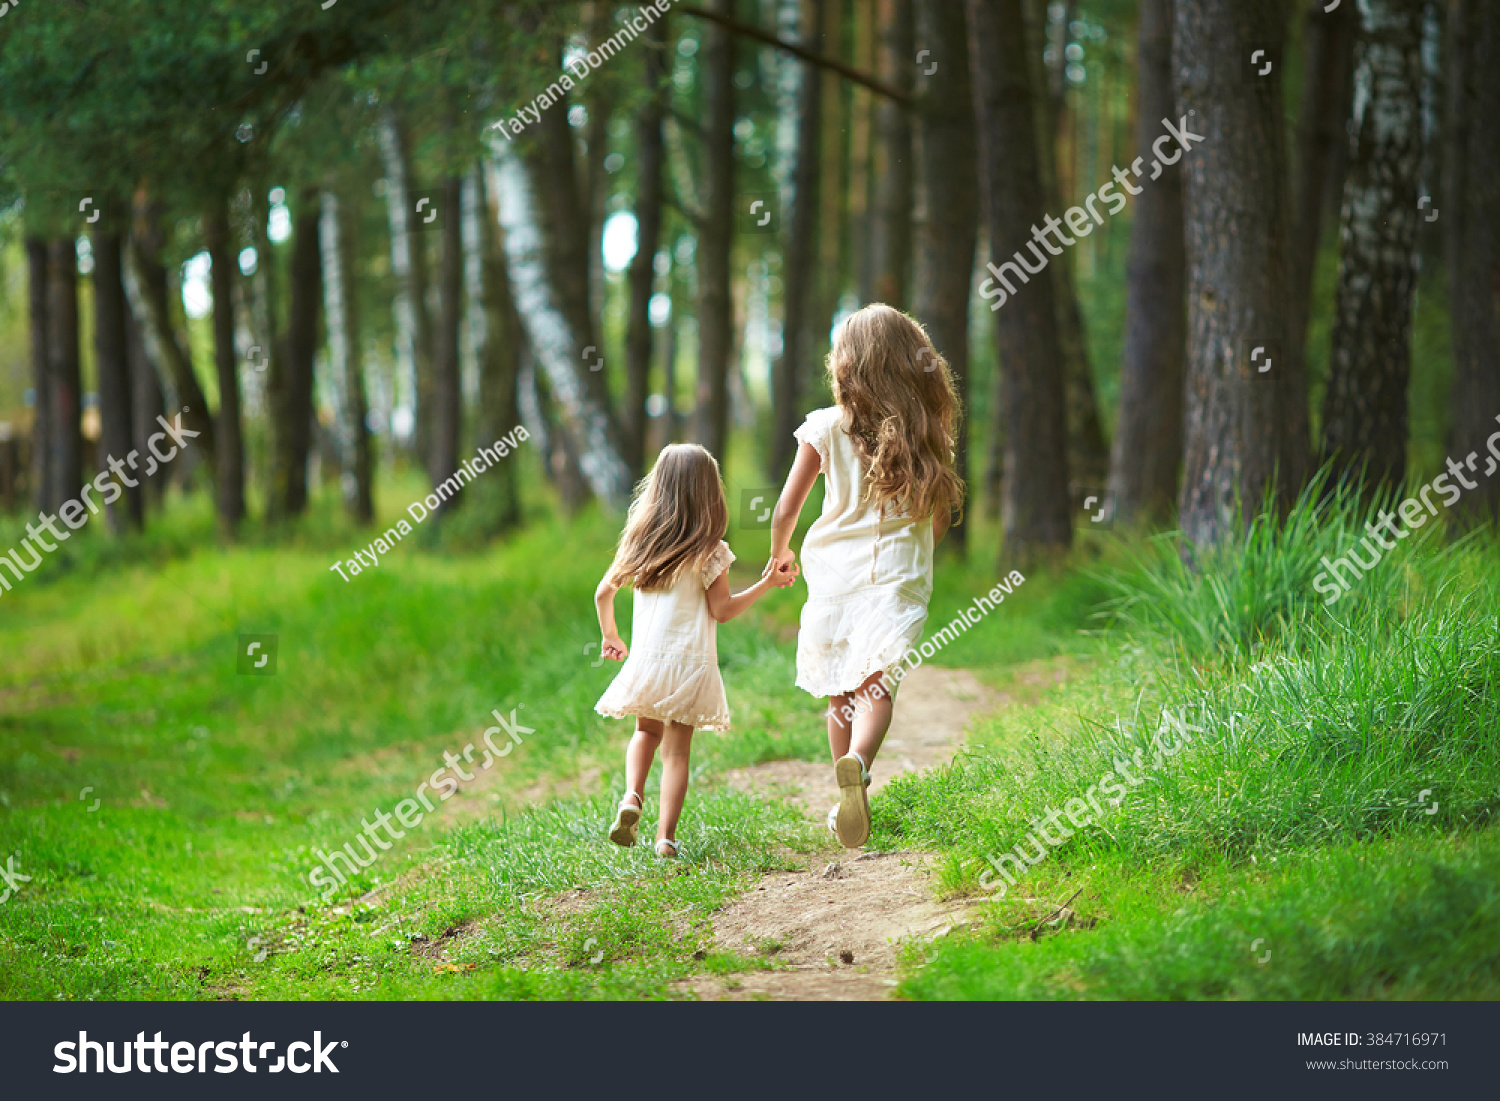 Two sisters run through the forest holding hands Summer sunny day and girls in light dresses Beautiful long hair in a child